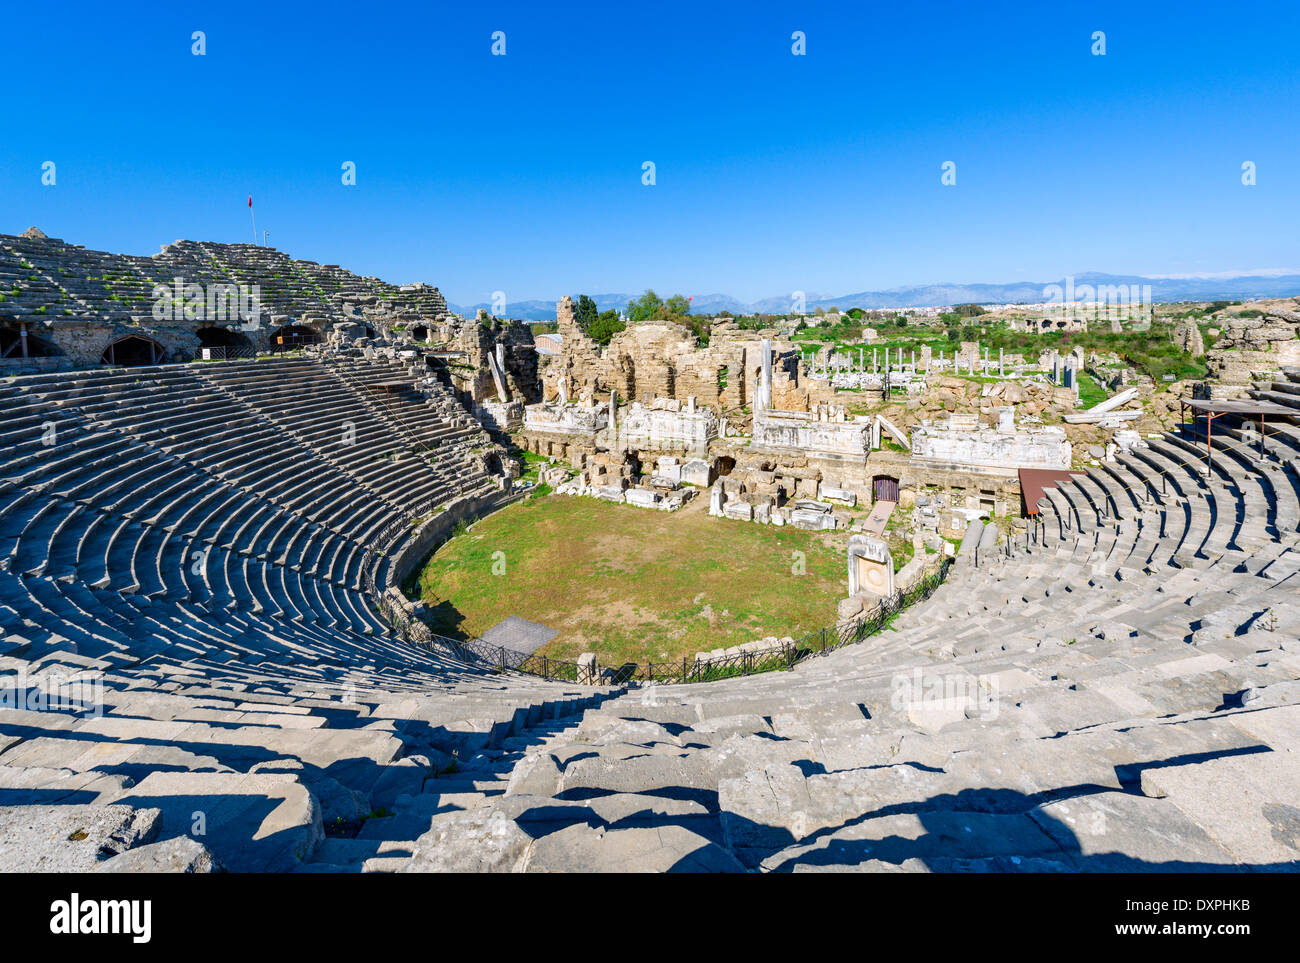 View over the ruins of ancient Side from the Theatre, Pamphylia, Antalya Province, Turkey - Stock Image